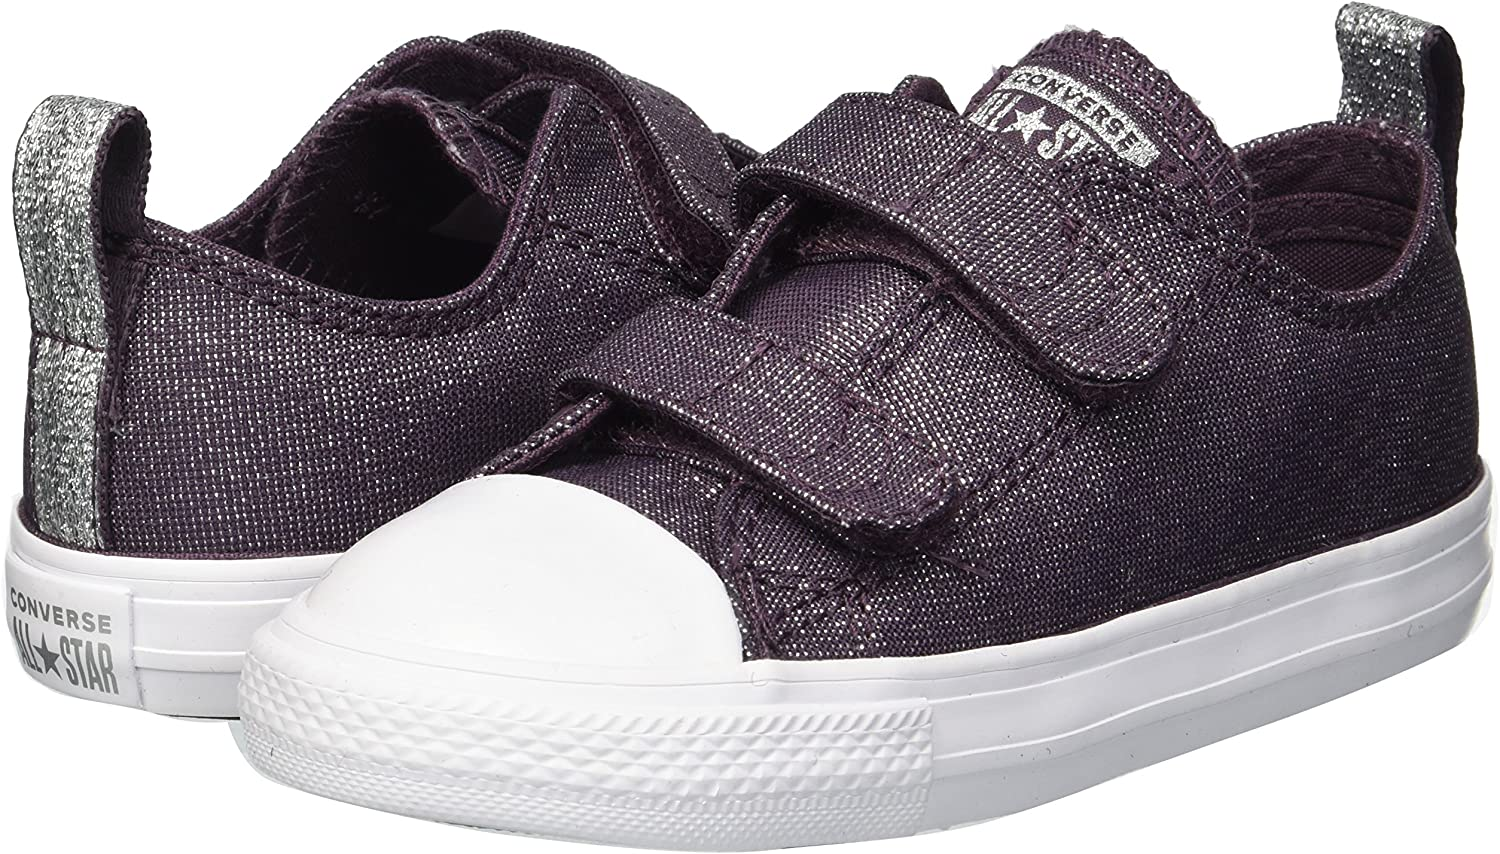 Converse Kids Chuck Taylor All Star 2v Sneaker